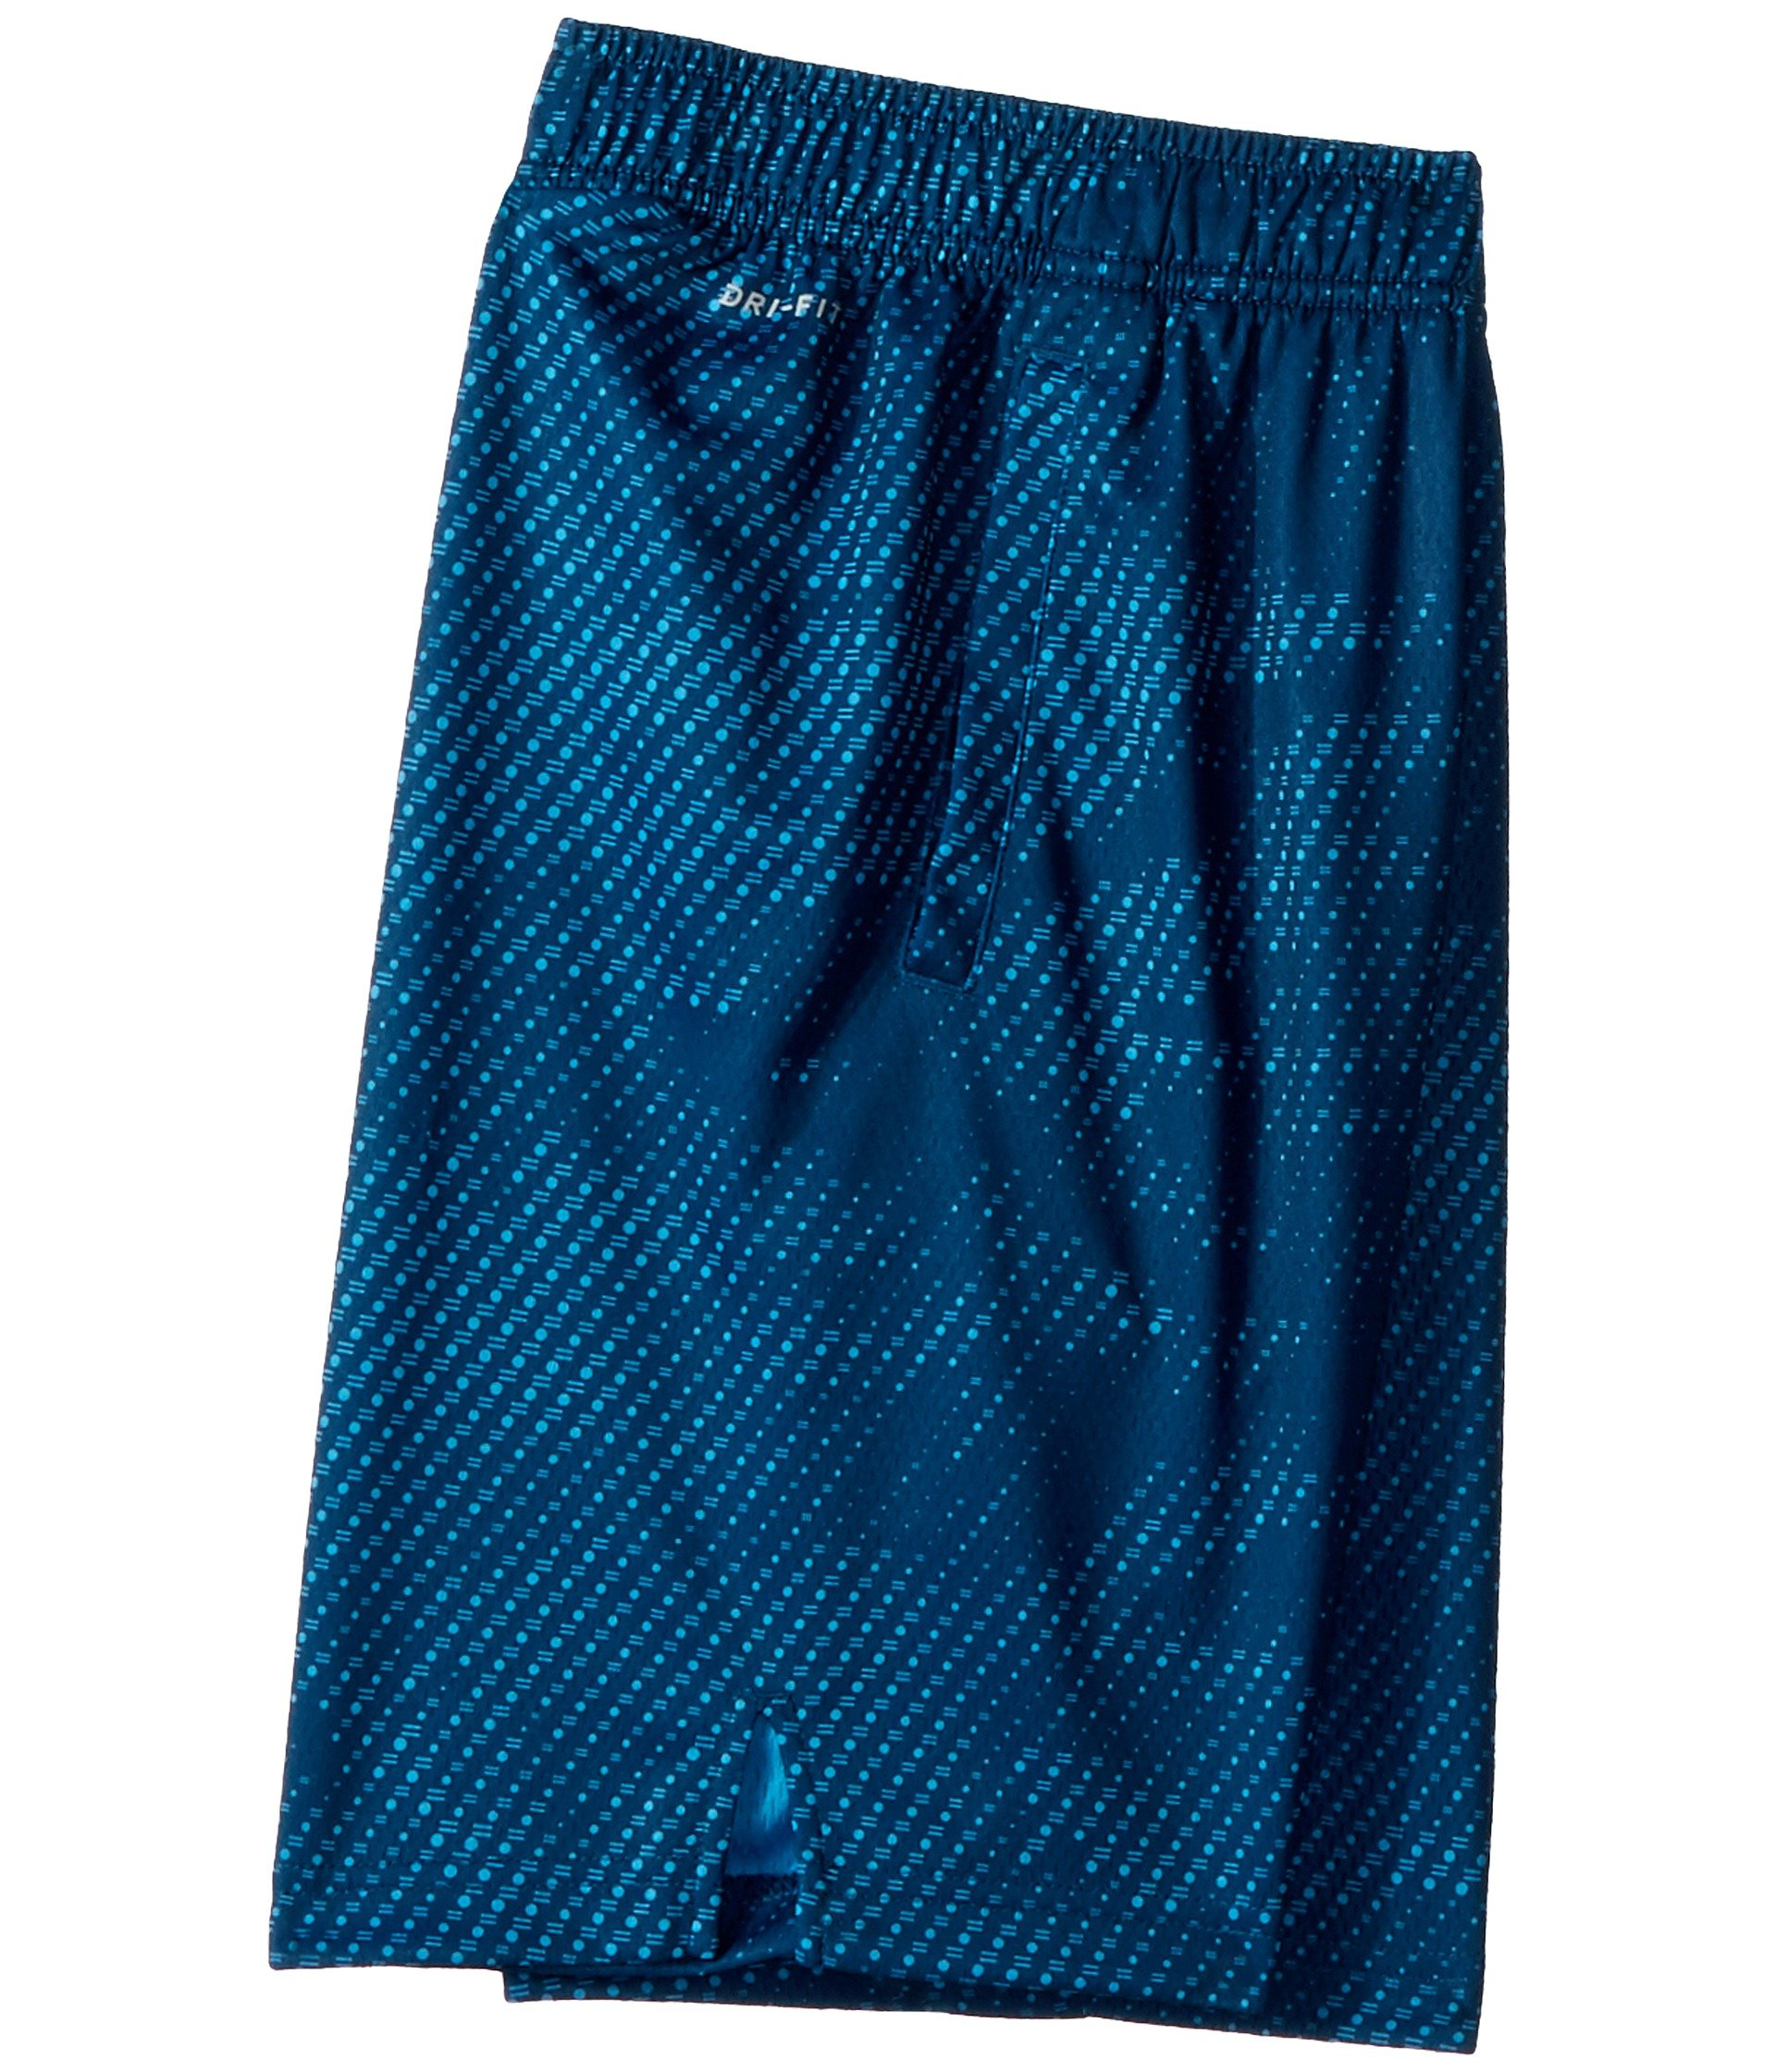 Nike Boy's Dry Printed Fly Training Shorts (Blue Force, Large) by Nike (Image #3)